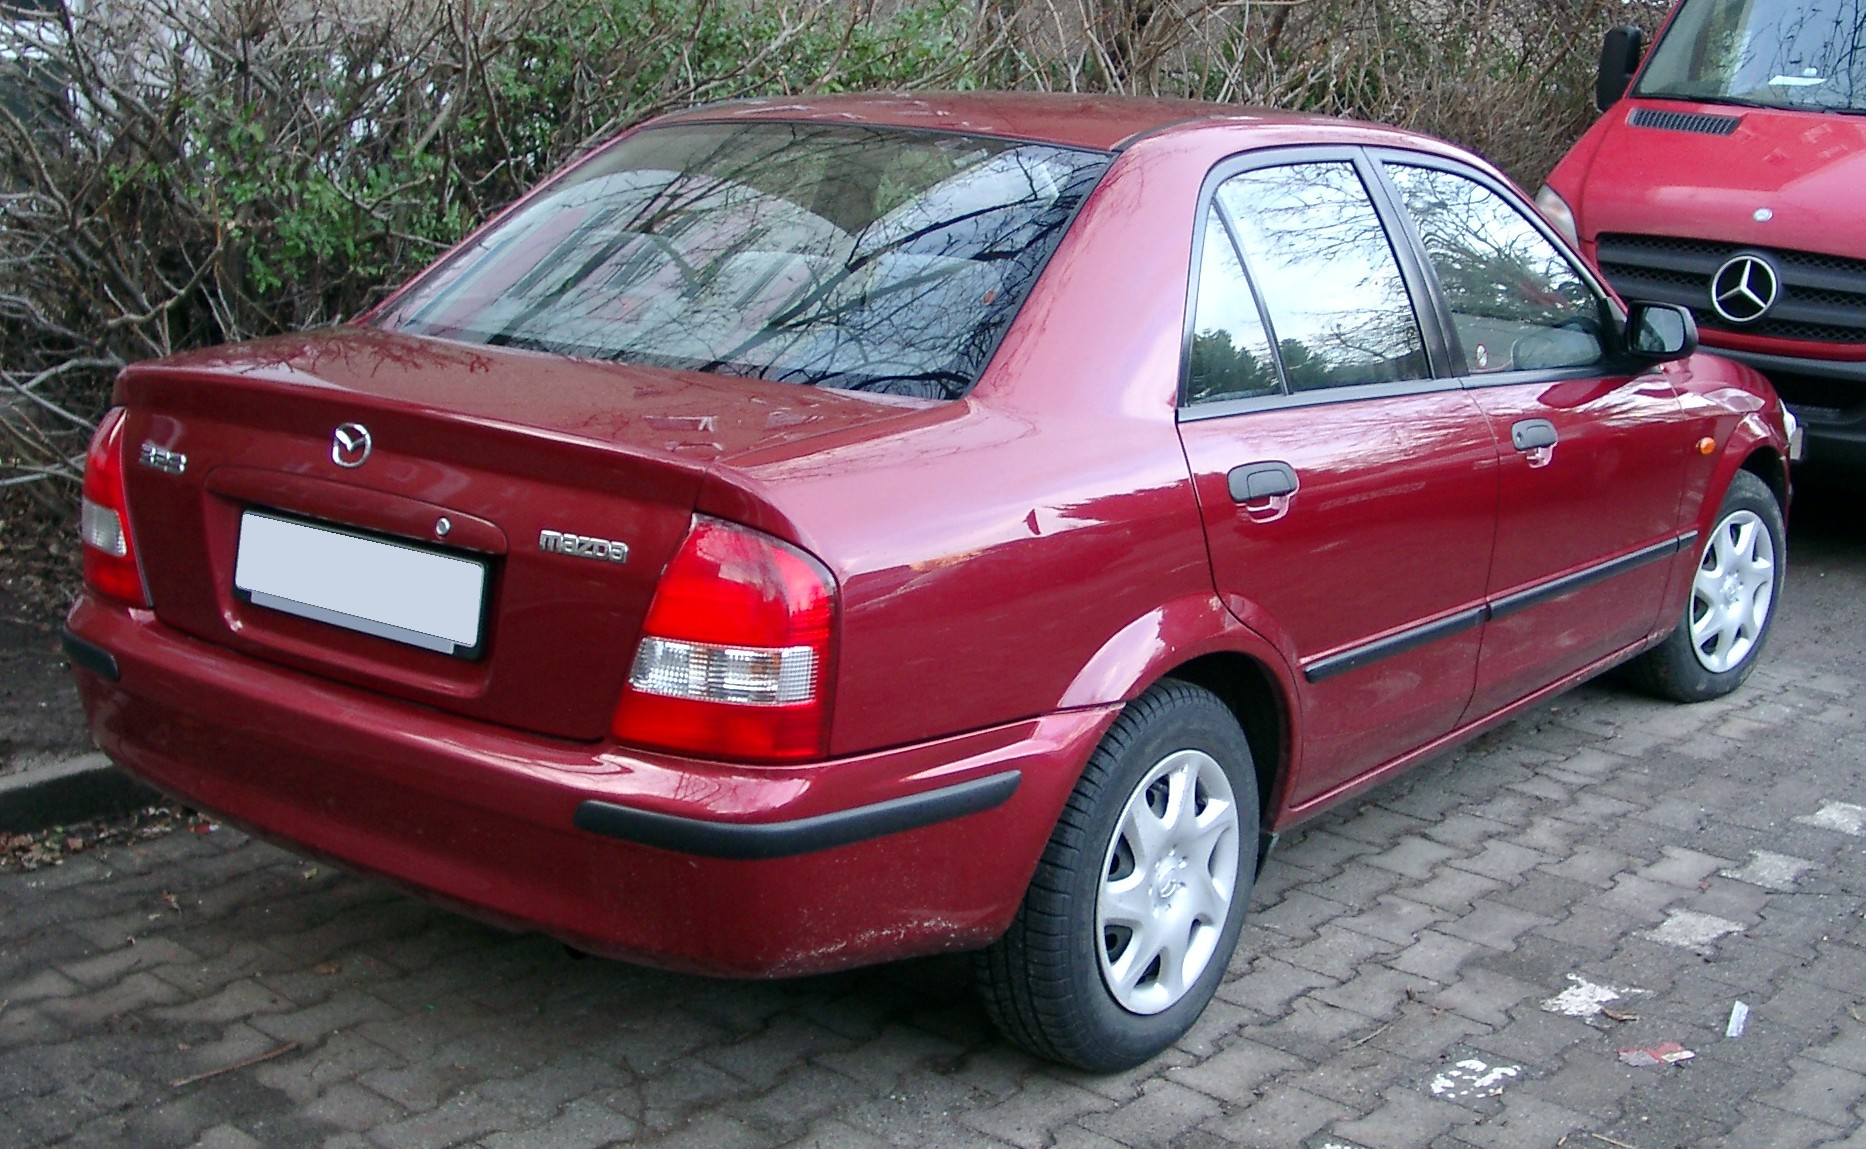 mazda astina wikipedia with File Mazda 323 Rear 20080110 on File 2003 Mazda 323  BJ II  Astina Shades 5 Door hatchback 01 additionally File mazda 323 hatch front moreover Images together with File 1st Ford Festiva furthermore File Mazda 323f rear 20071002.